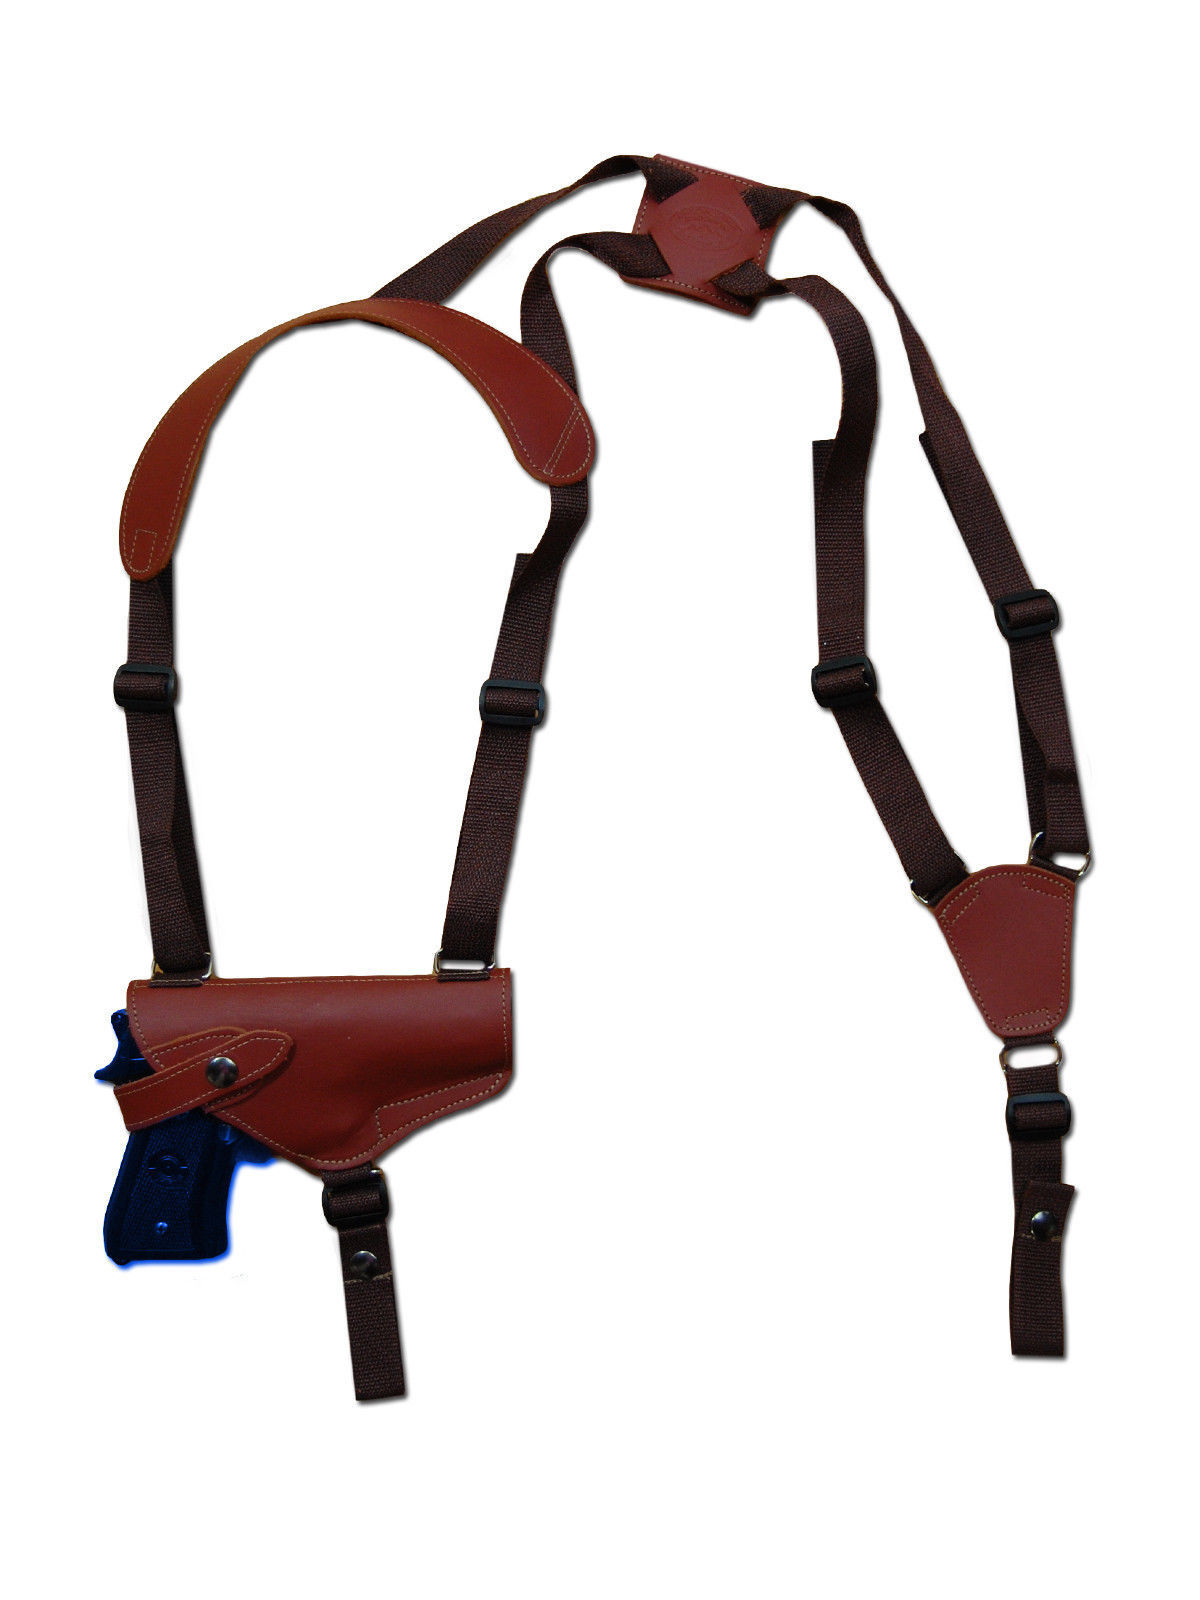 Primary image for NEW Barsony Horizontal Burgundy Leather Shoulder Holster CZ, EAA, FEG Full Size